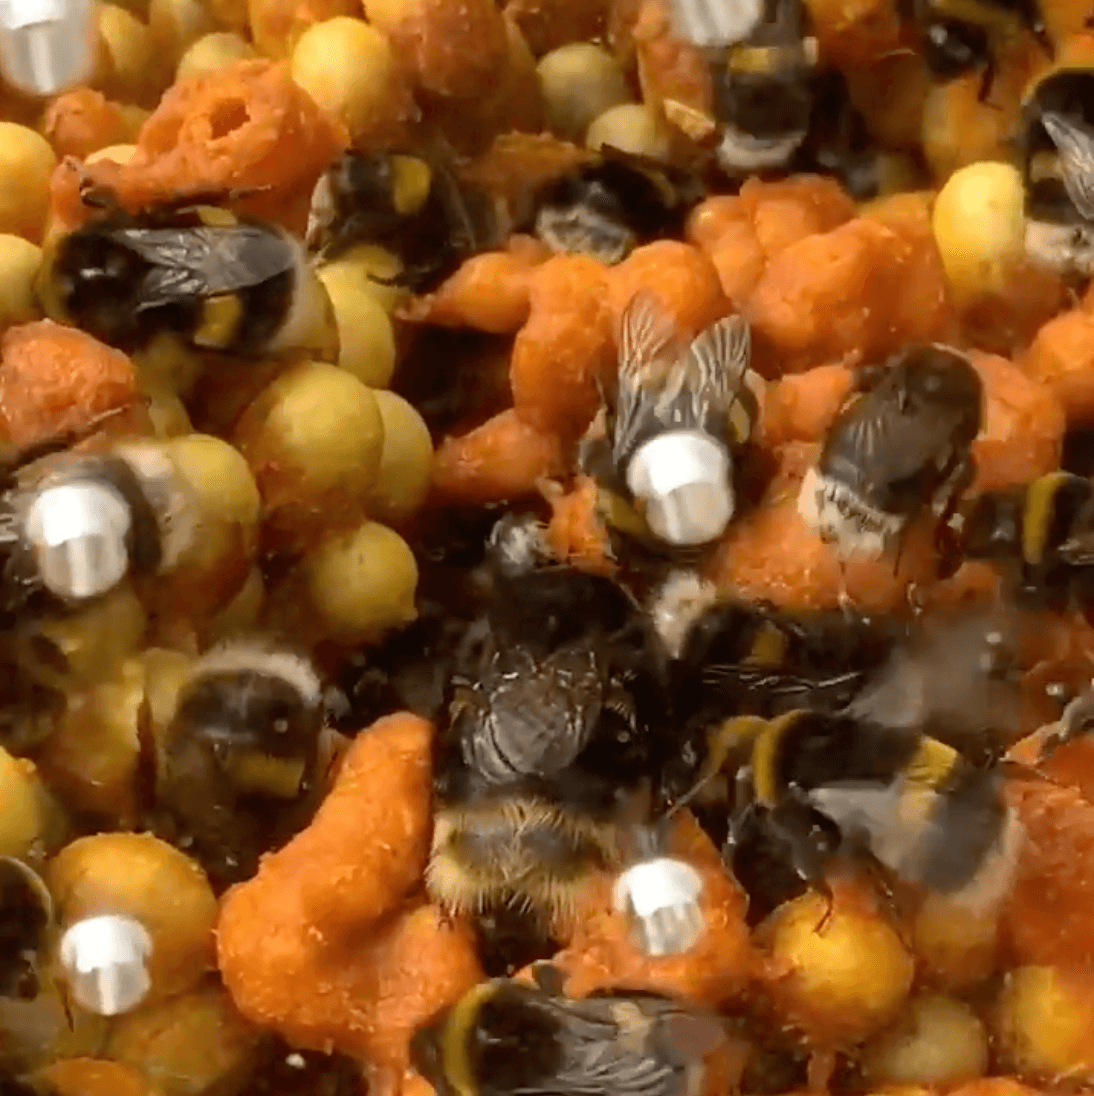 Inside a live Bumblebee Hive – Look for the Queen Bumblebee!